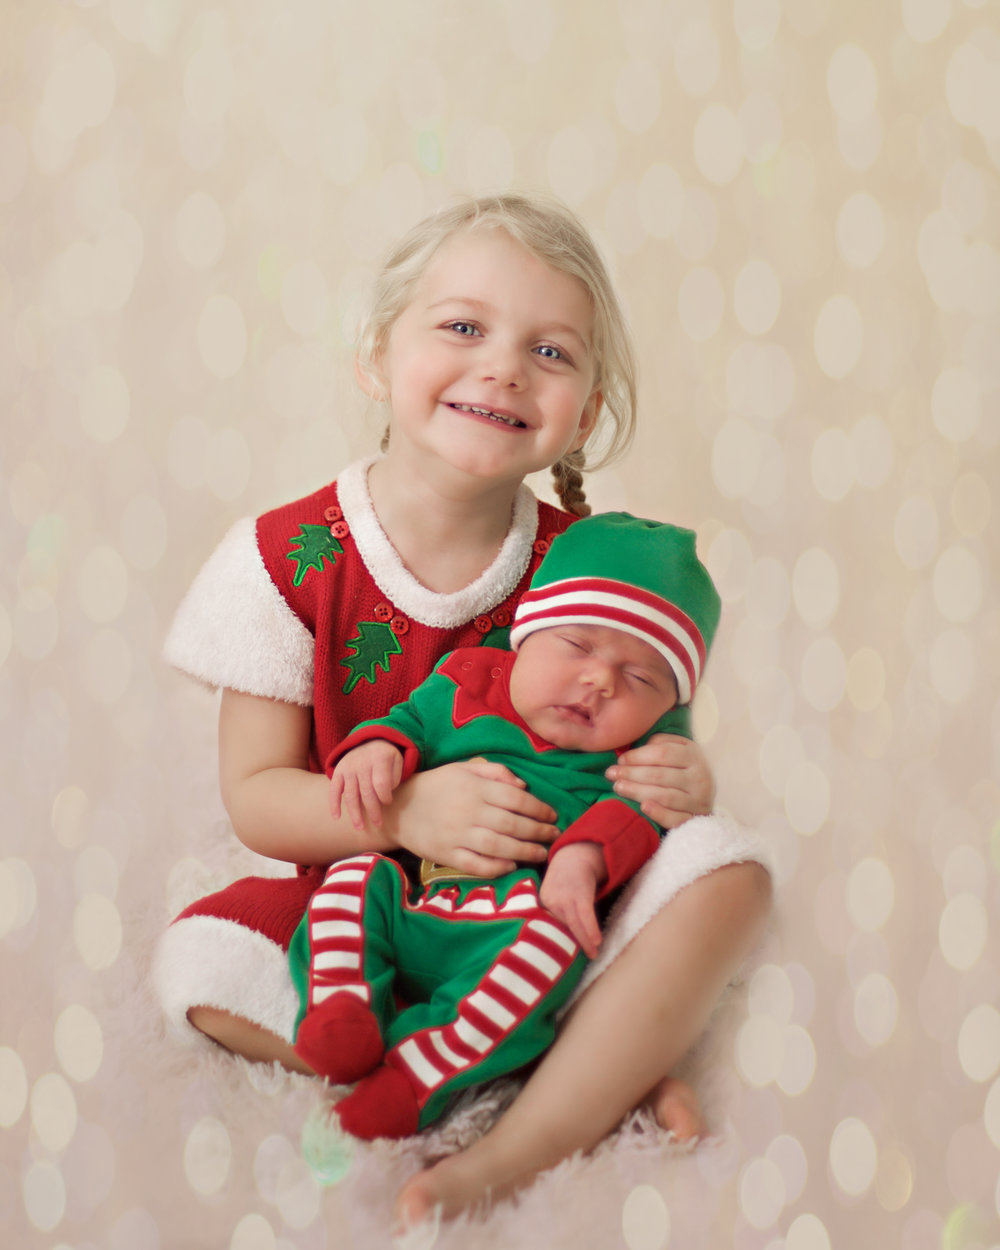 Squidgy and Pickle Christmas photoshoot Santa dress and baby elf